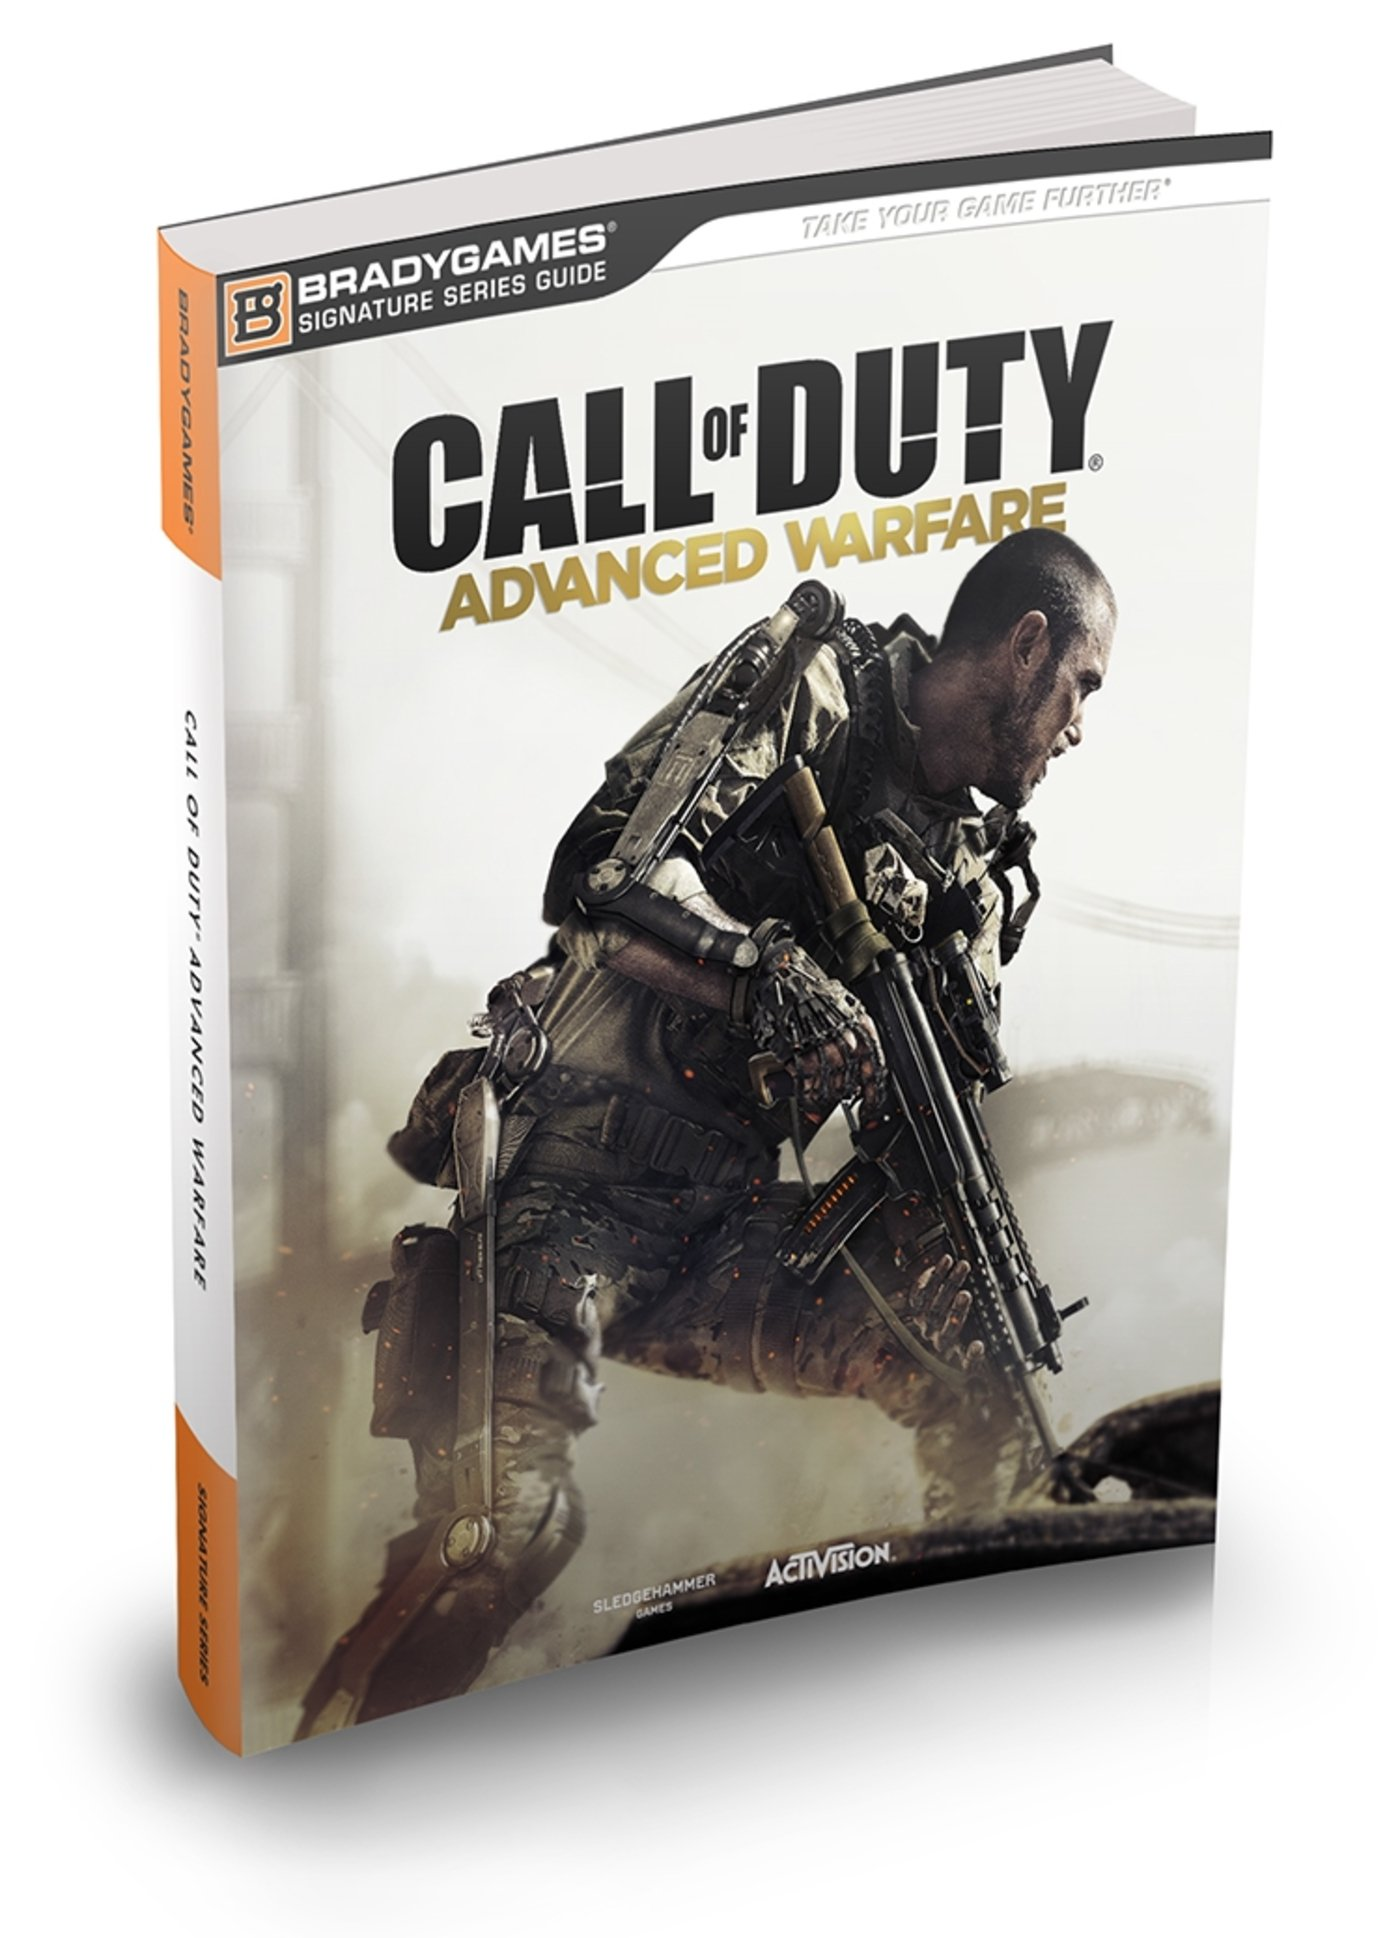 Here S What S Inside The Call Of Duty Advanced Warfare Limited Edition Strategy Guide Game